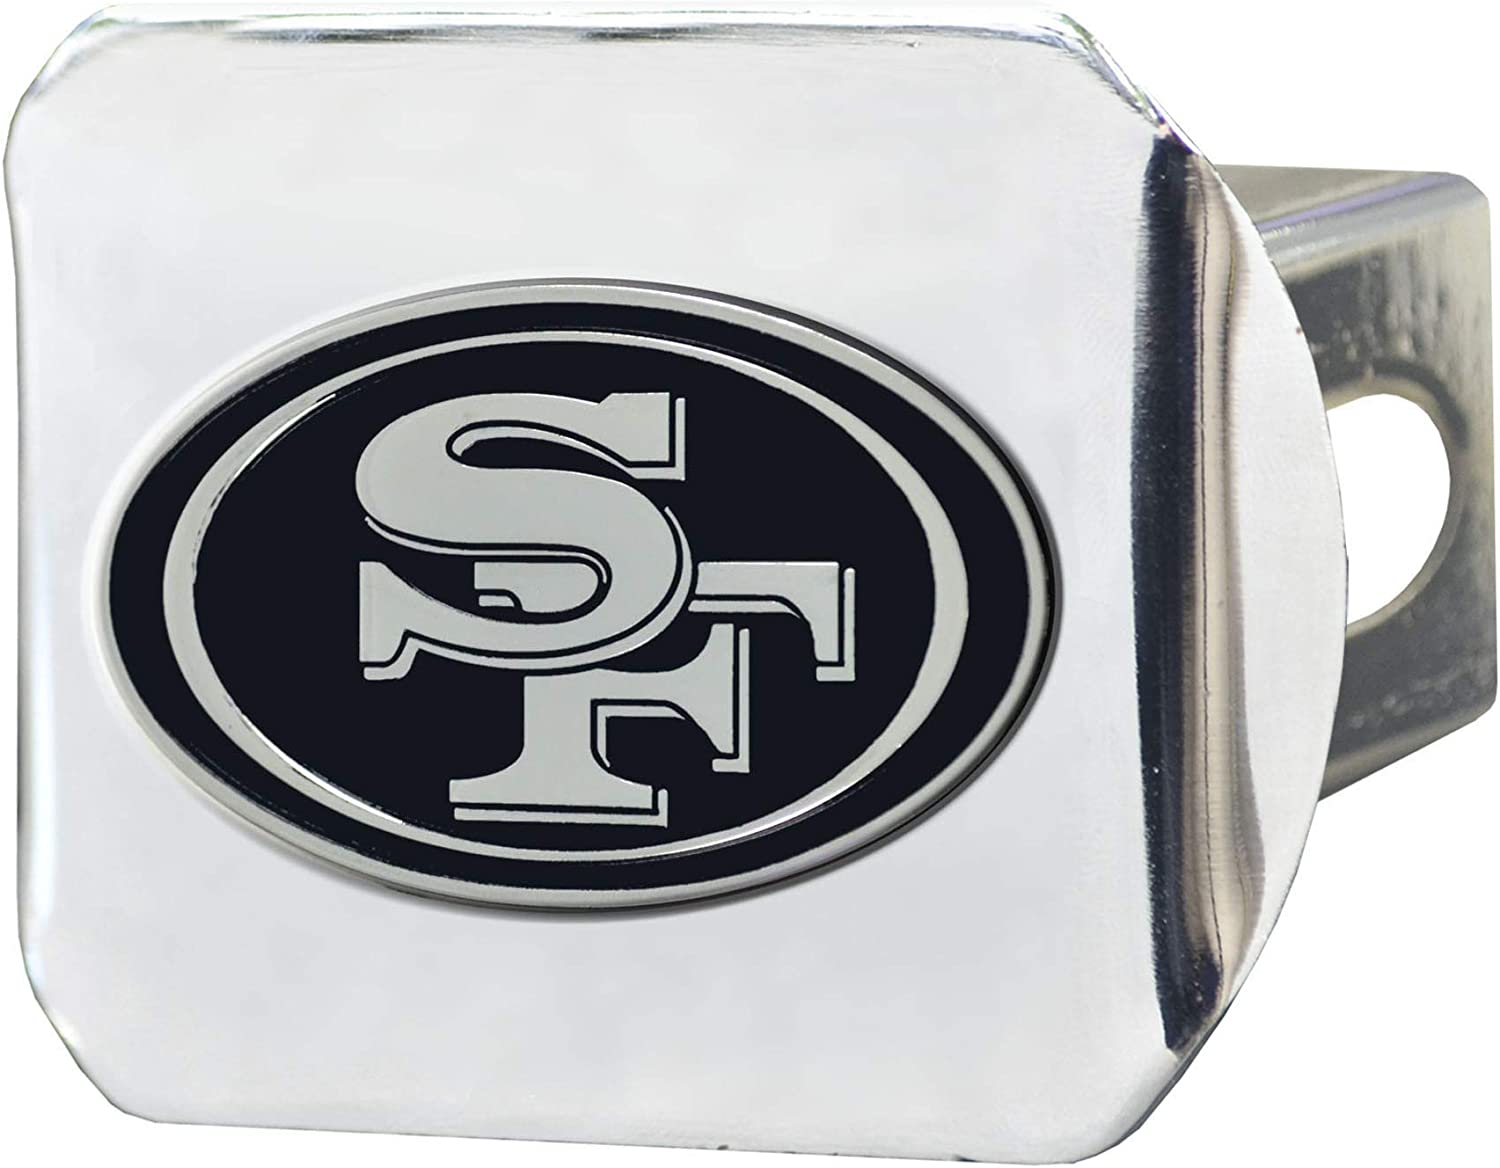 FANMATS Chrome 15626 NFL San Francisco 49ers Metal Hitch Cover 2 Square Type III Hitch Cover